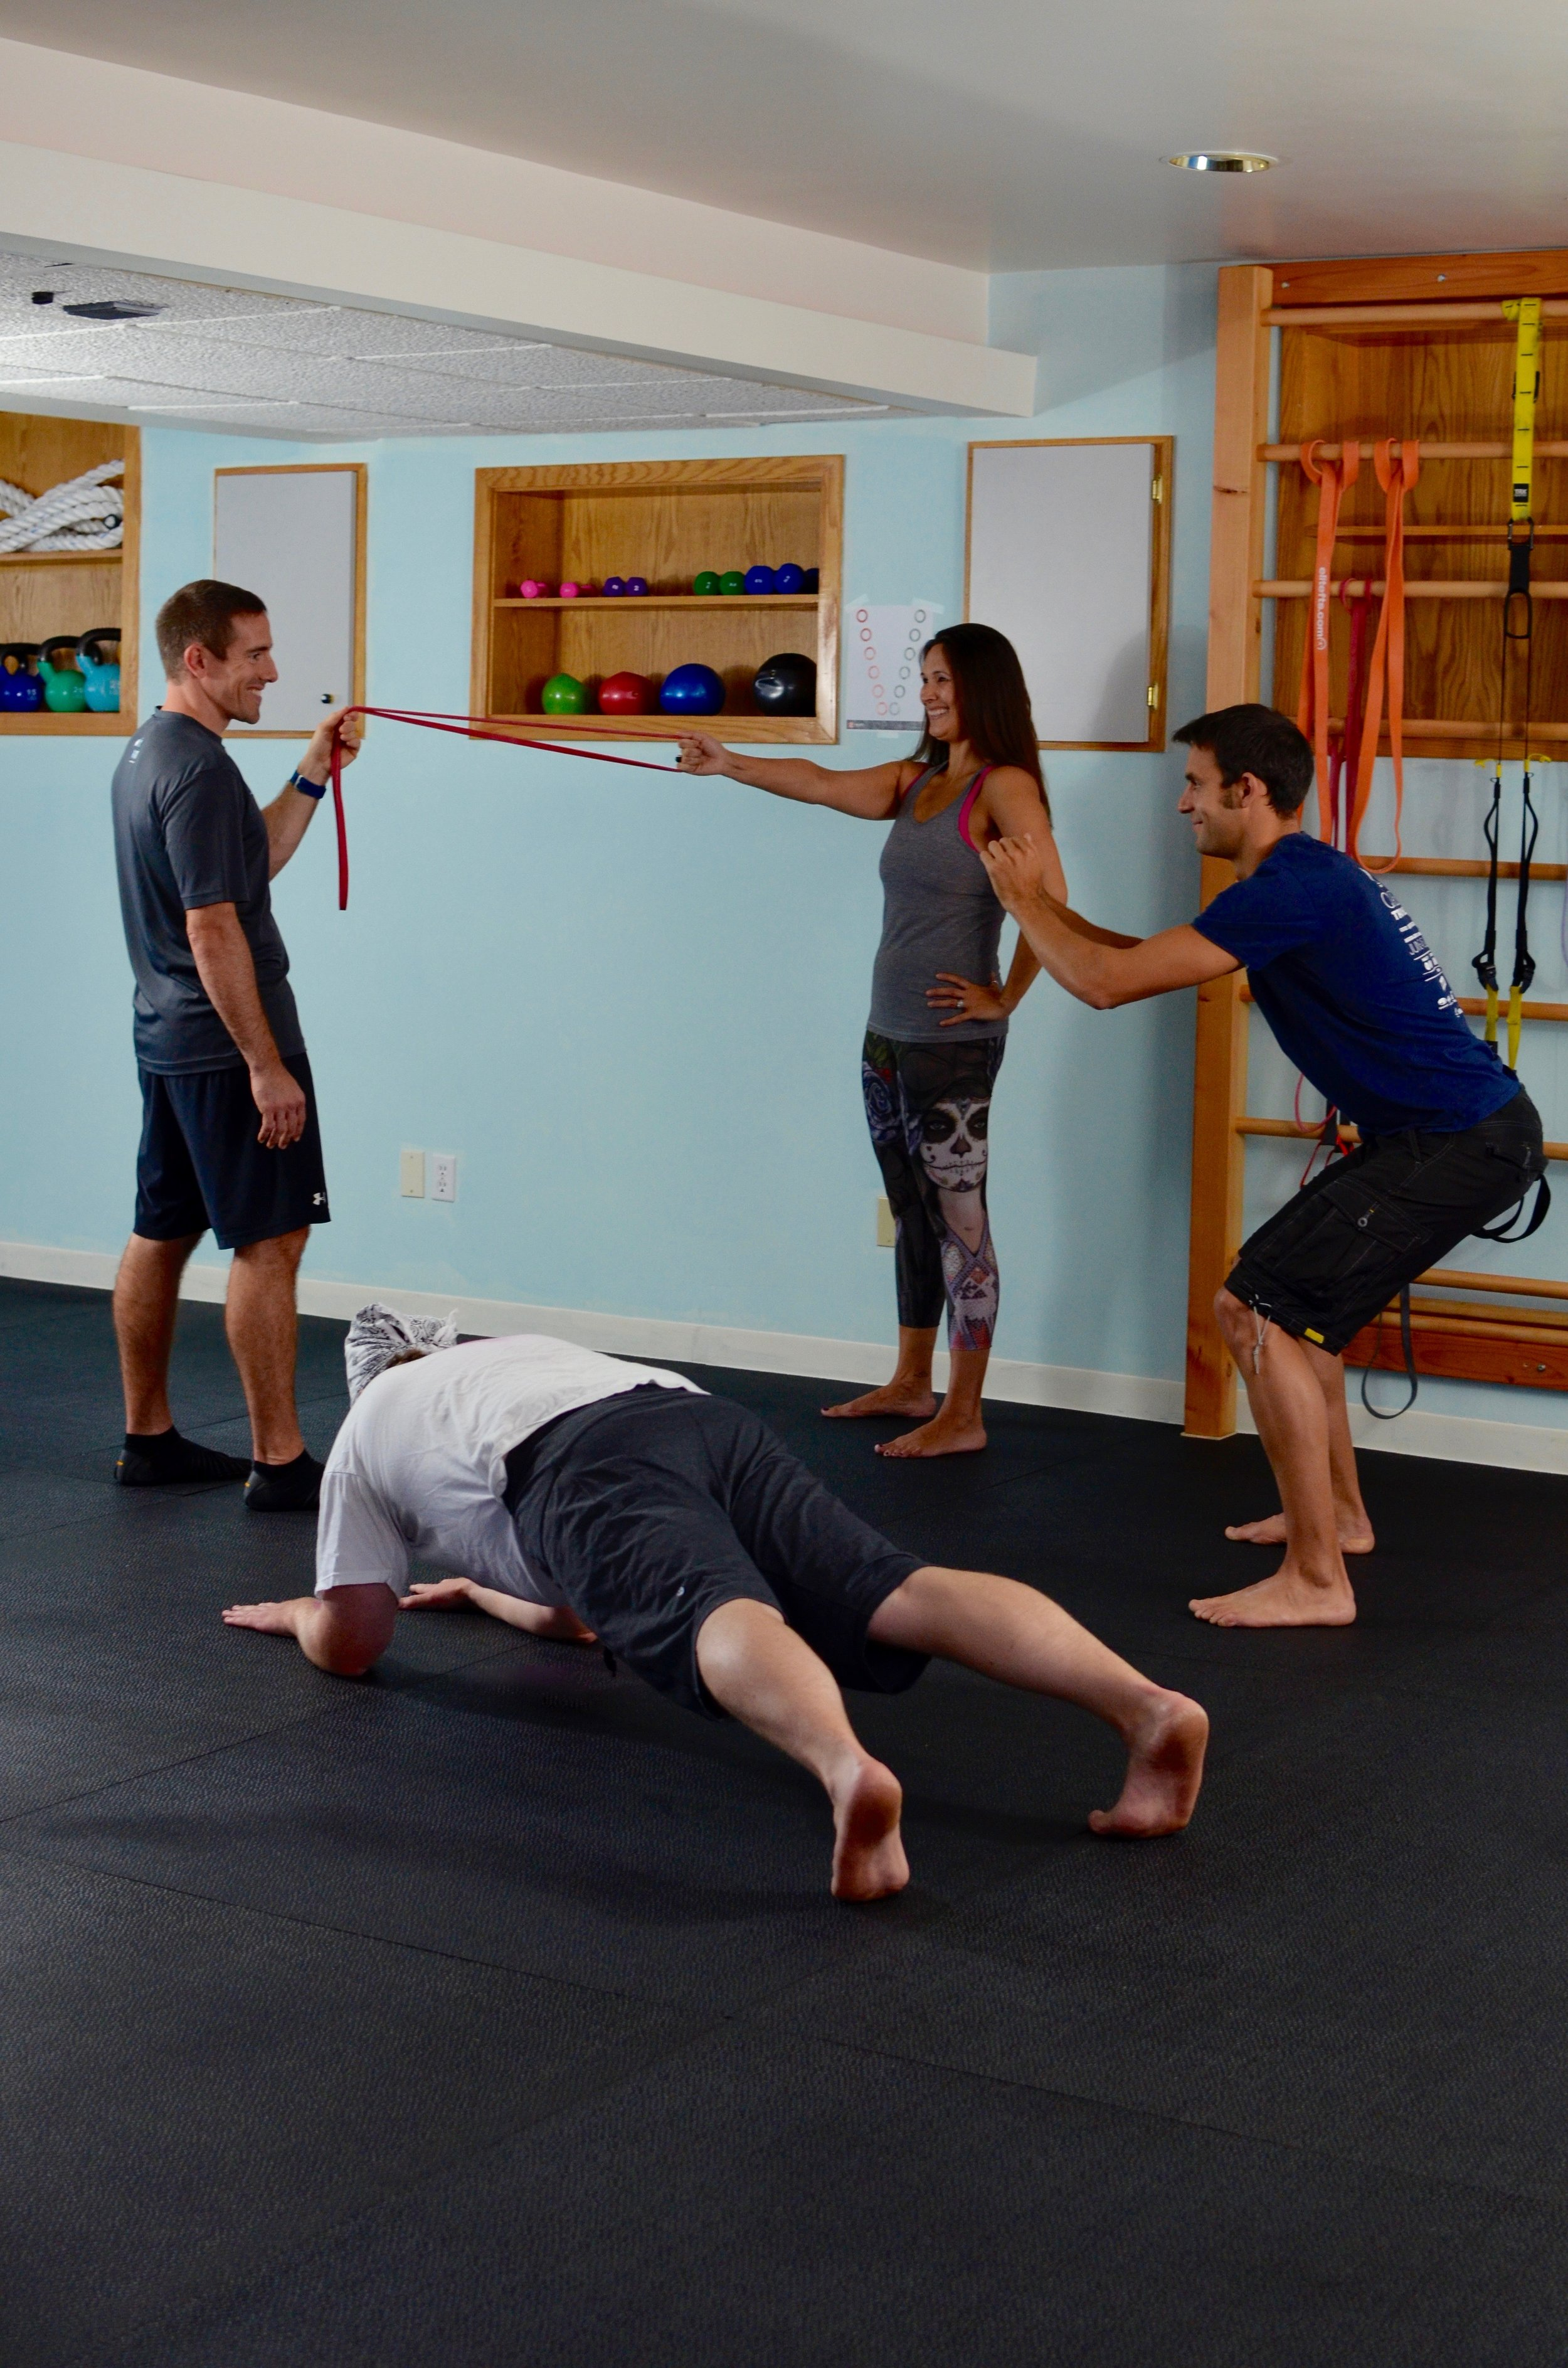 If you're not into one-on-one training, Matrix PErsonalized Fitness offers small group classes at affordable prices in East Greenwich, RI.